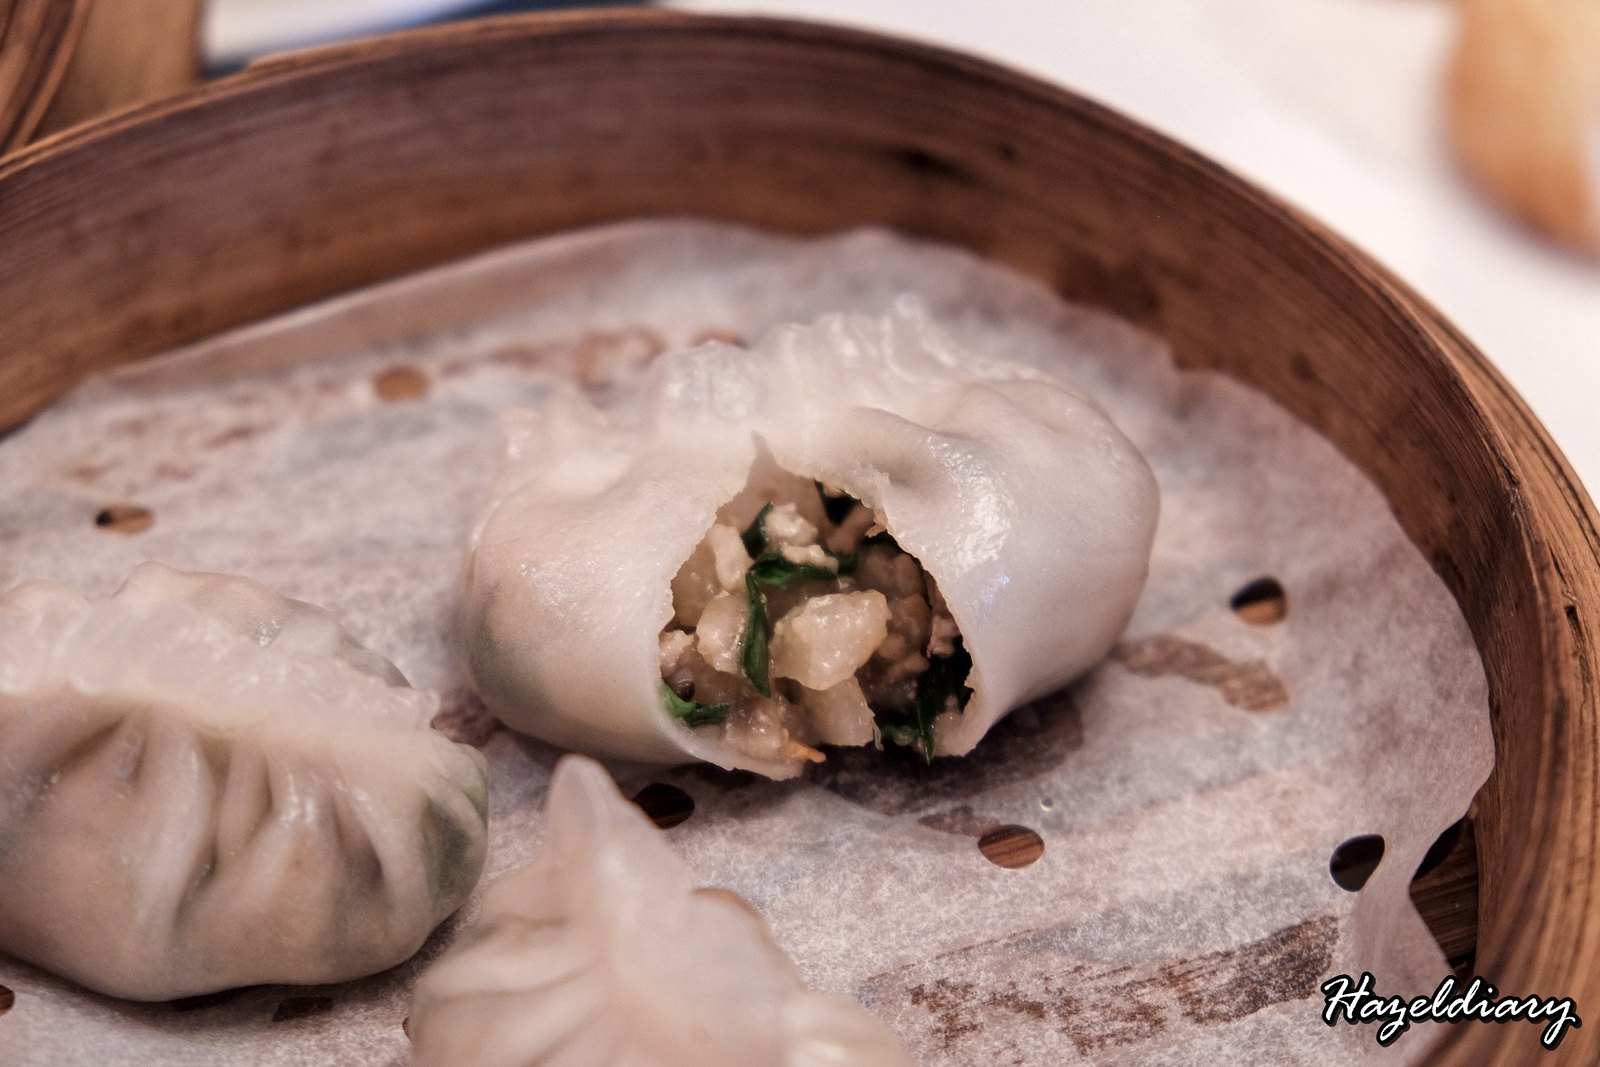 Yan Cantonese Cuisine-Steamed Pork and Mushroom Dumpling with Chives